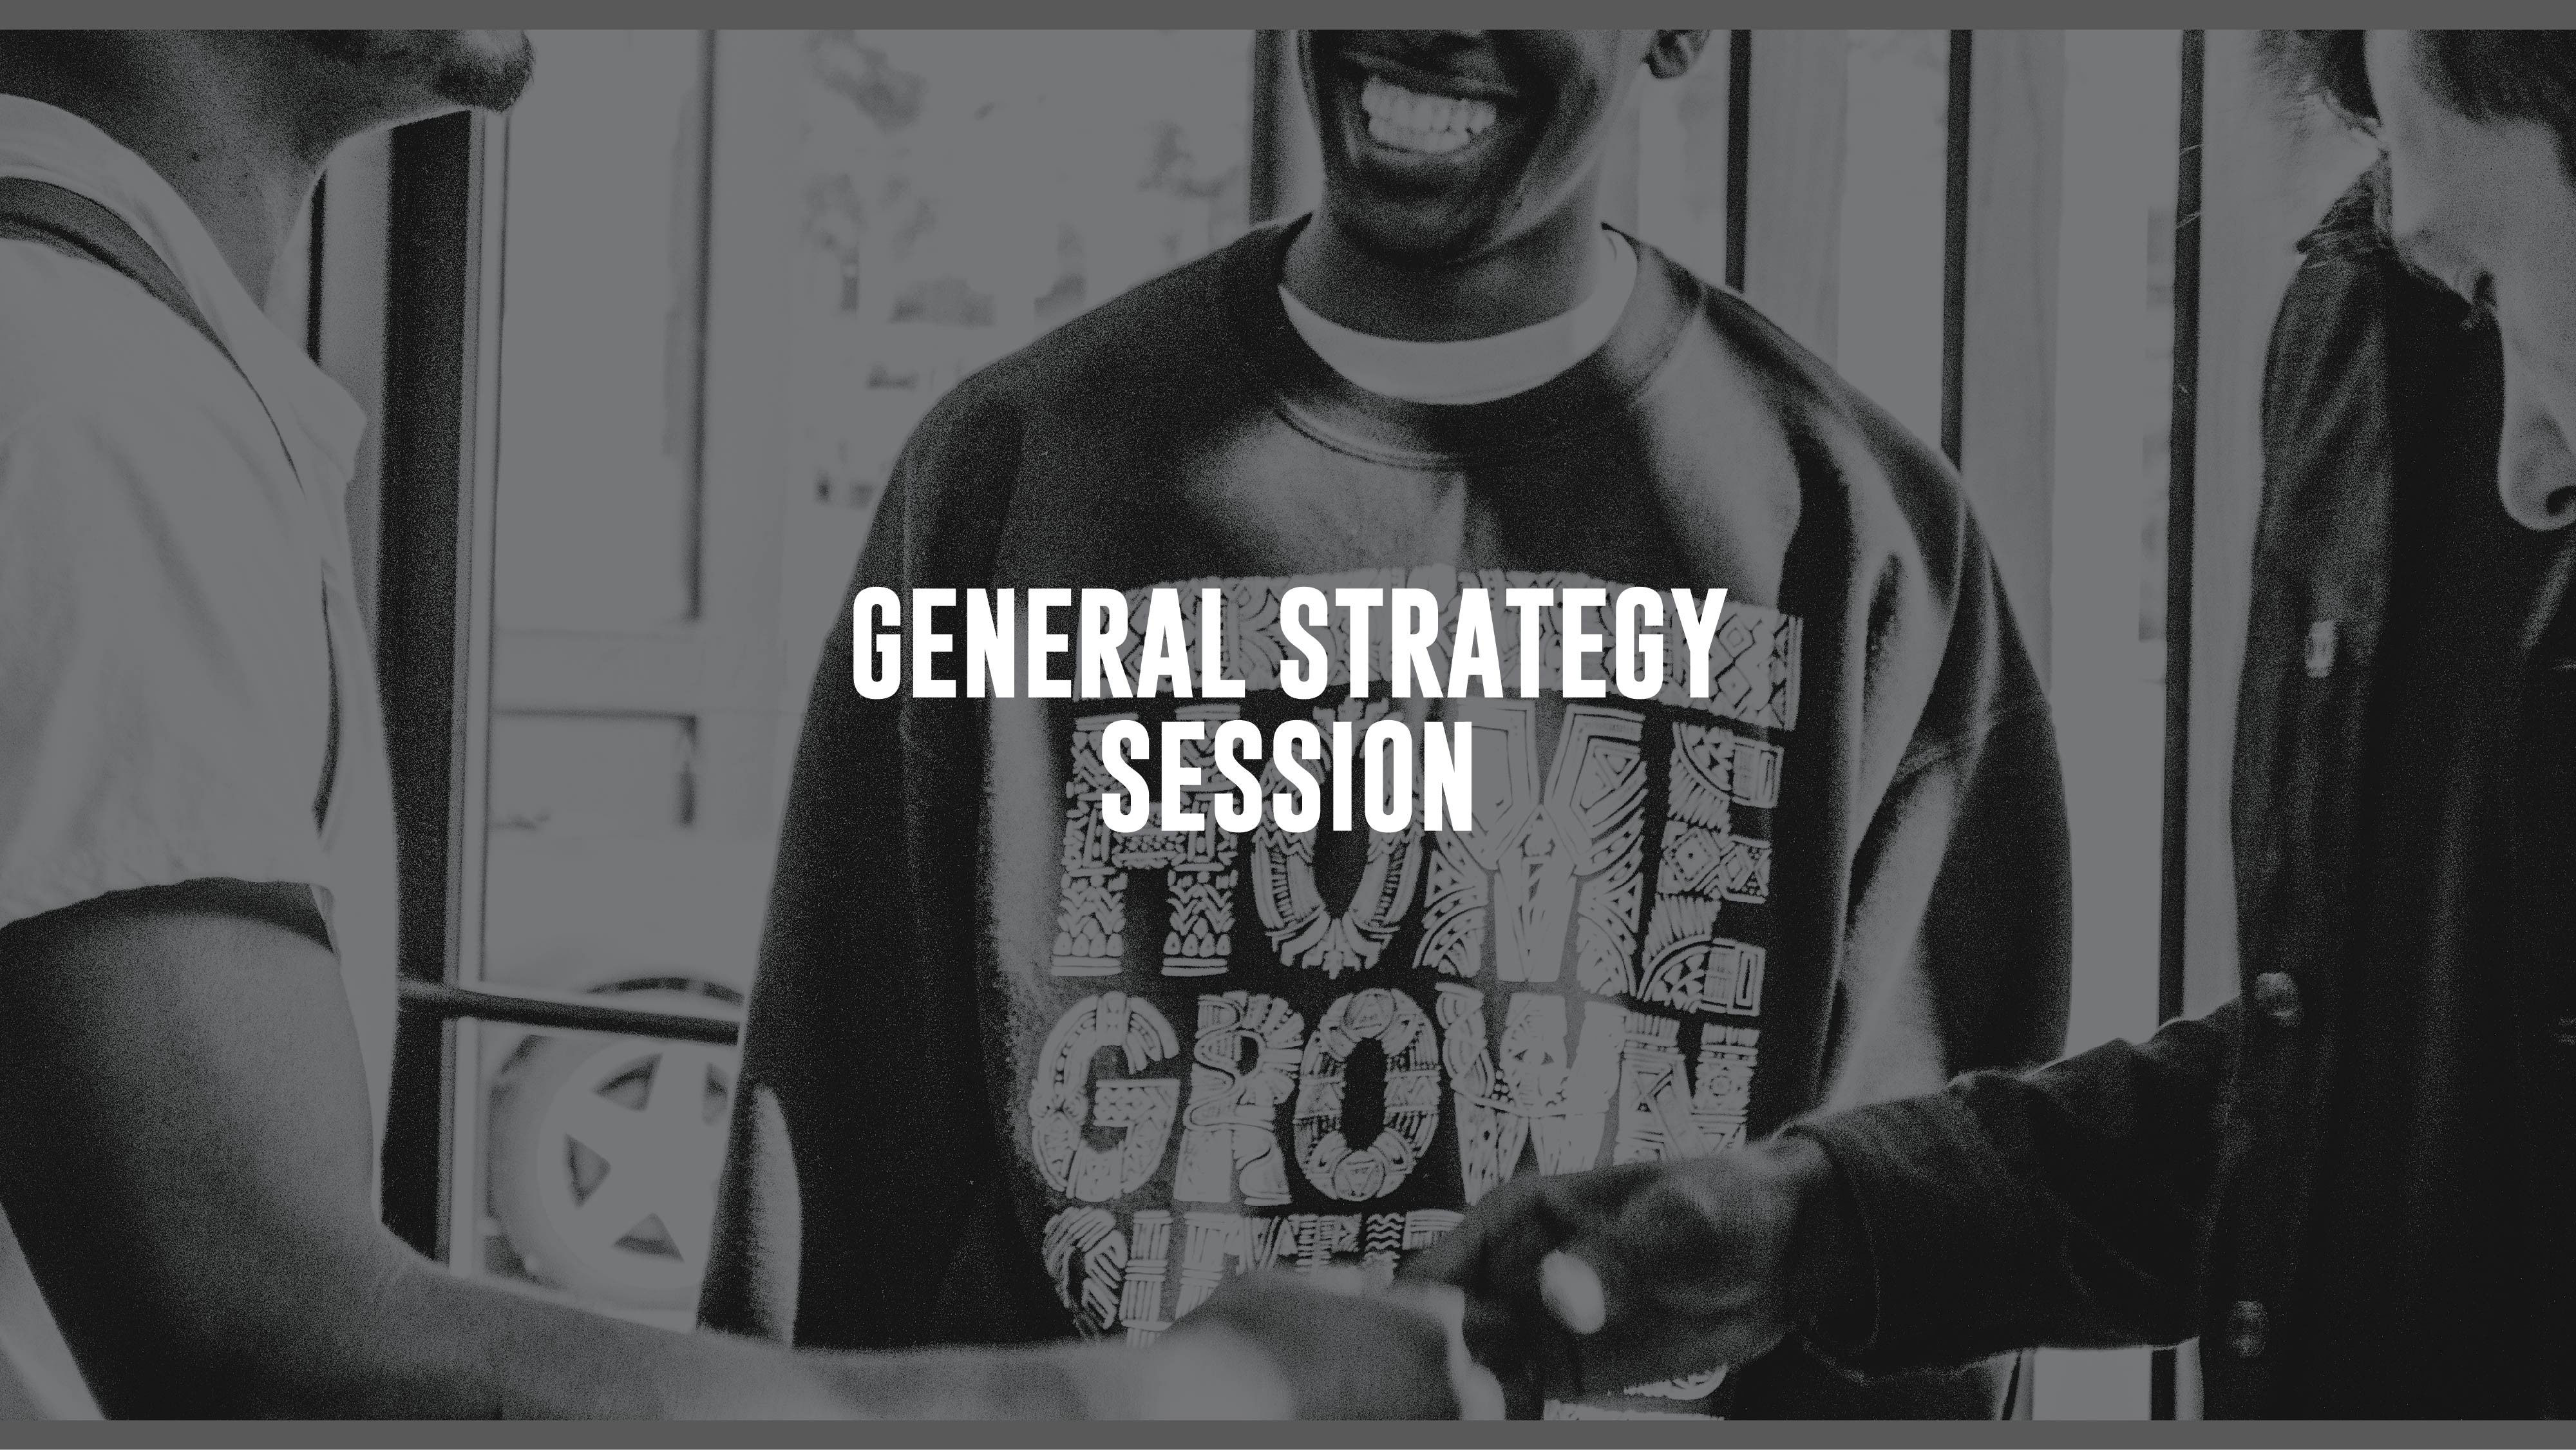 General Strategy Session